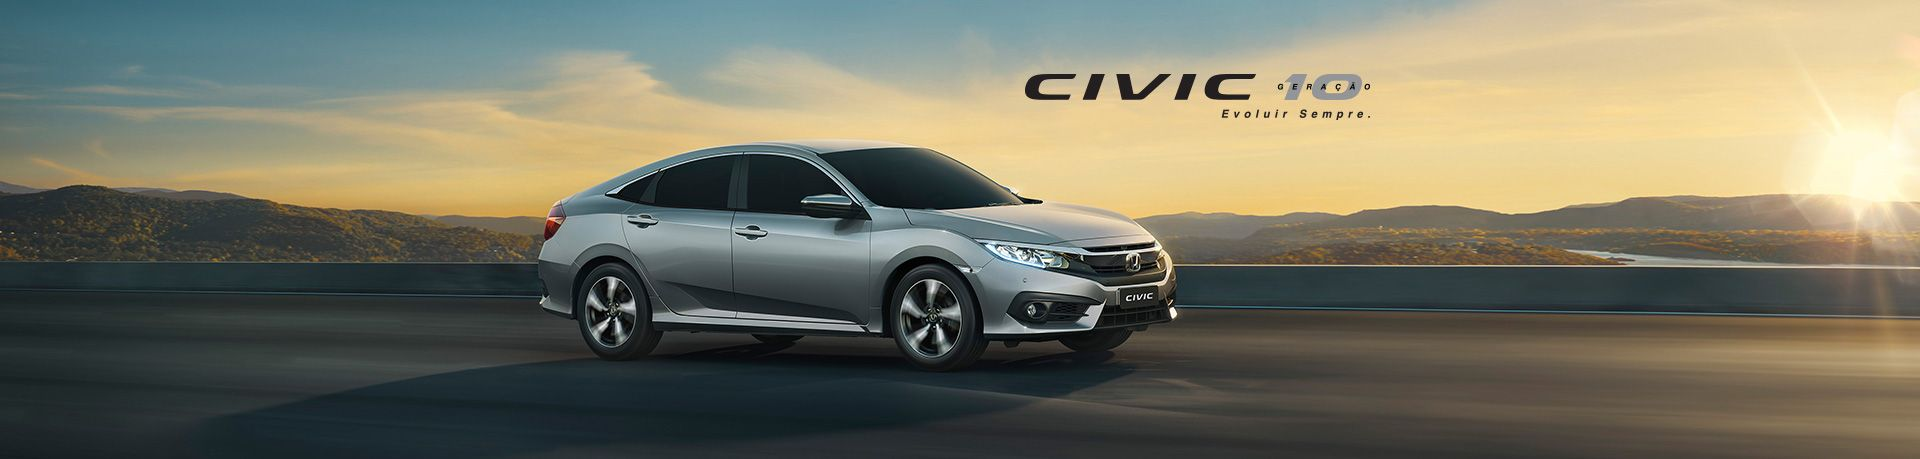 bg-header-civic